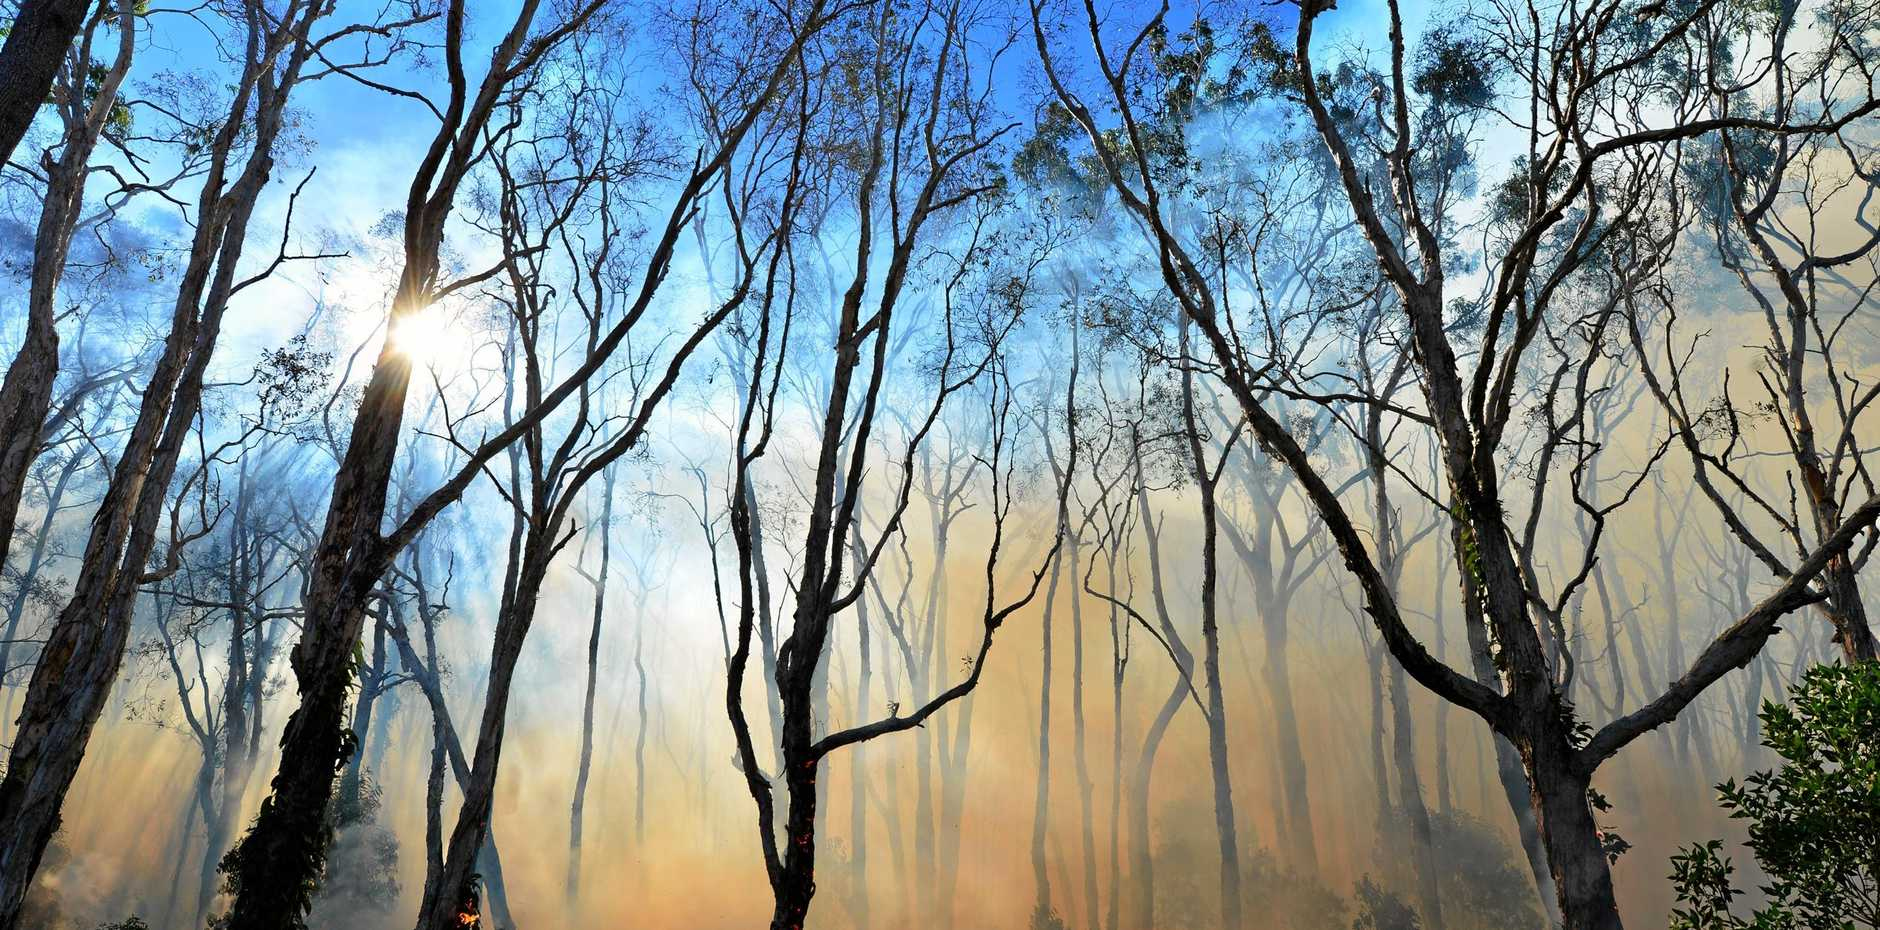 BUSHFIRE SEASON: The RFS are urging home owners to start preparing now.